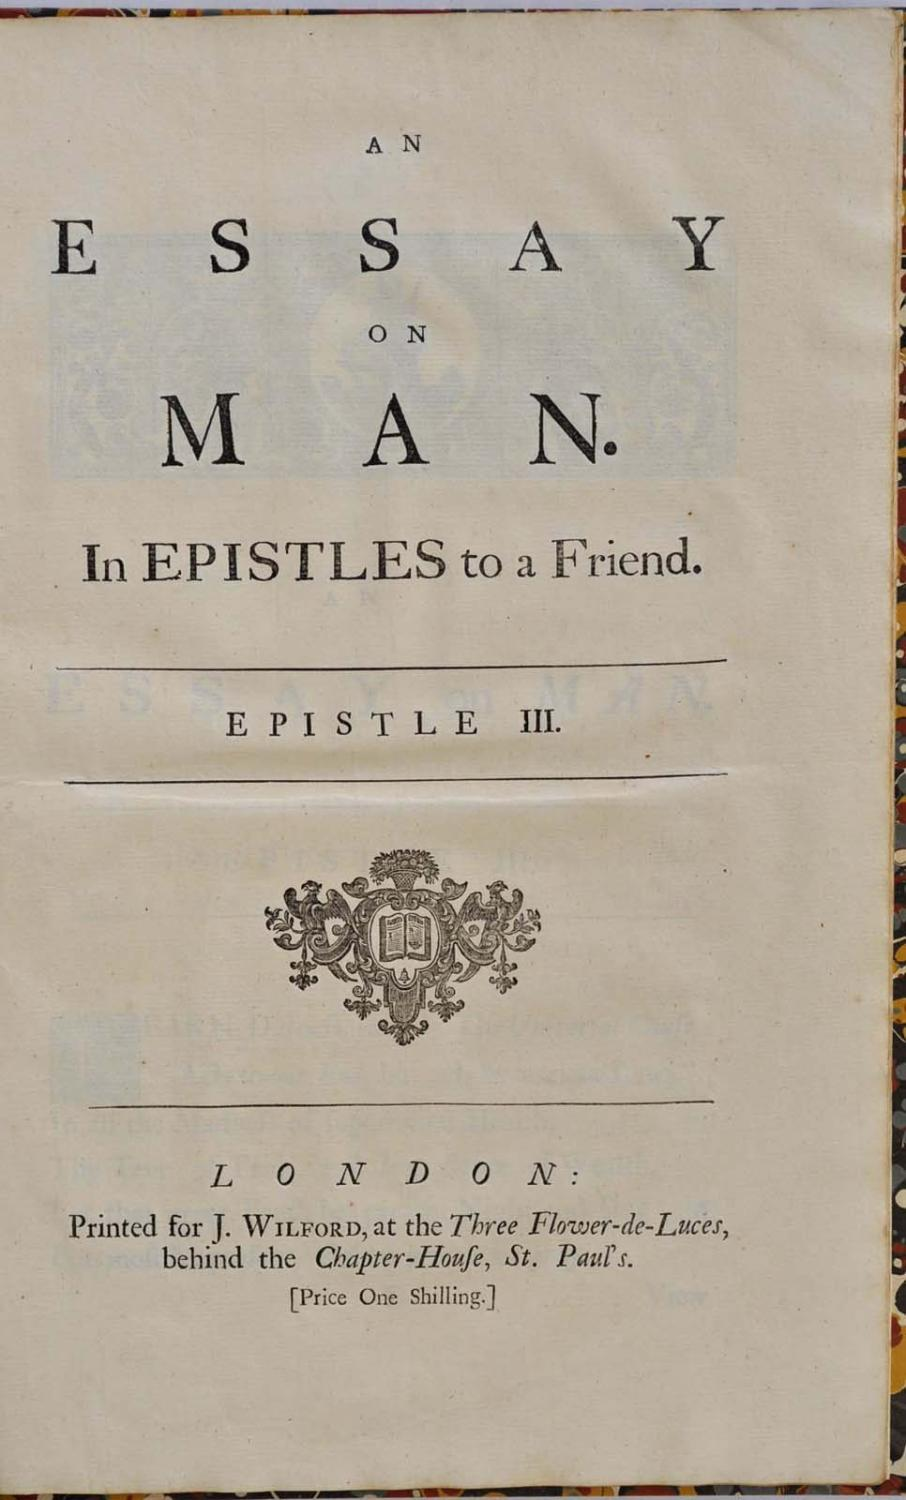 005 1357222764 4 Essay On Man Stirring By Alexander Pope Analysis Pdf Critical Manners Reveal Character Full